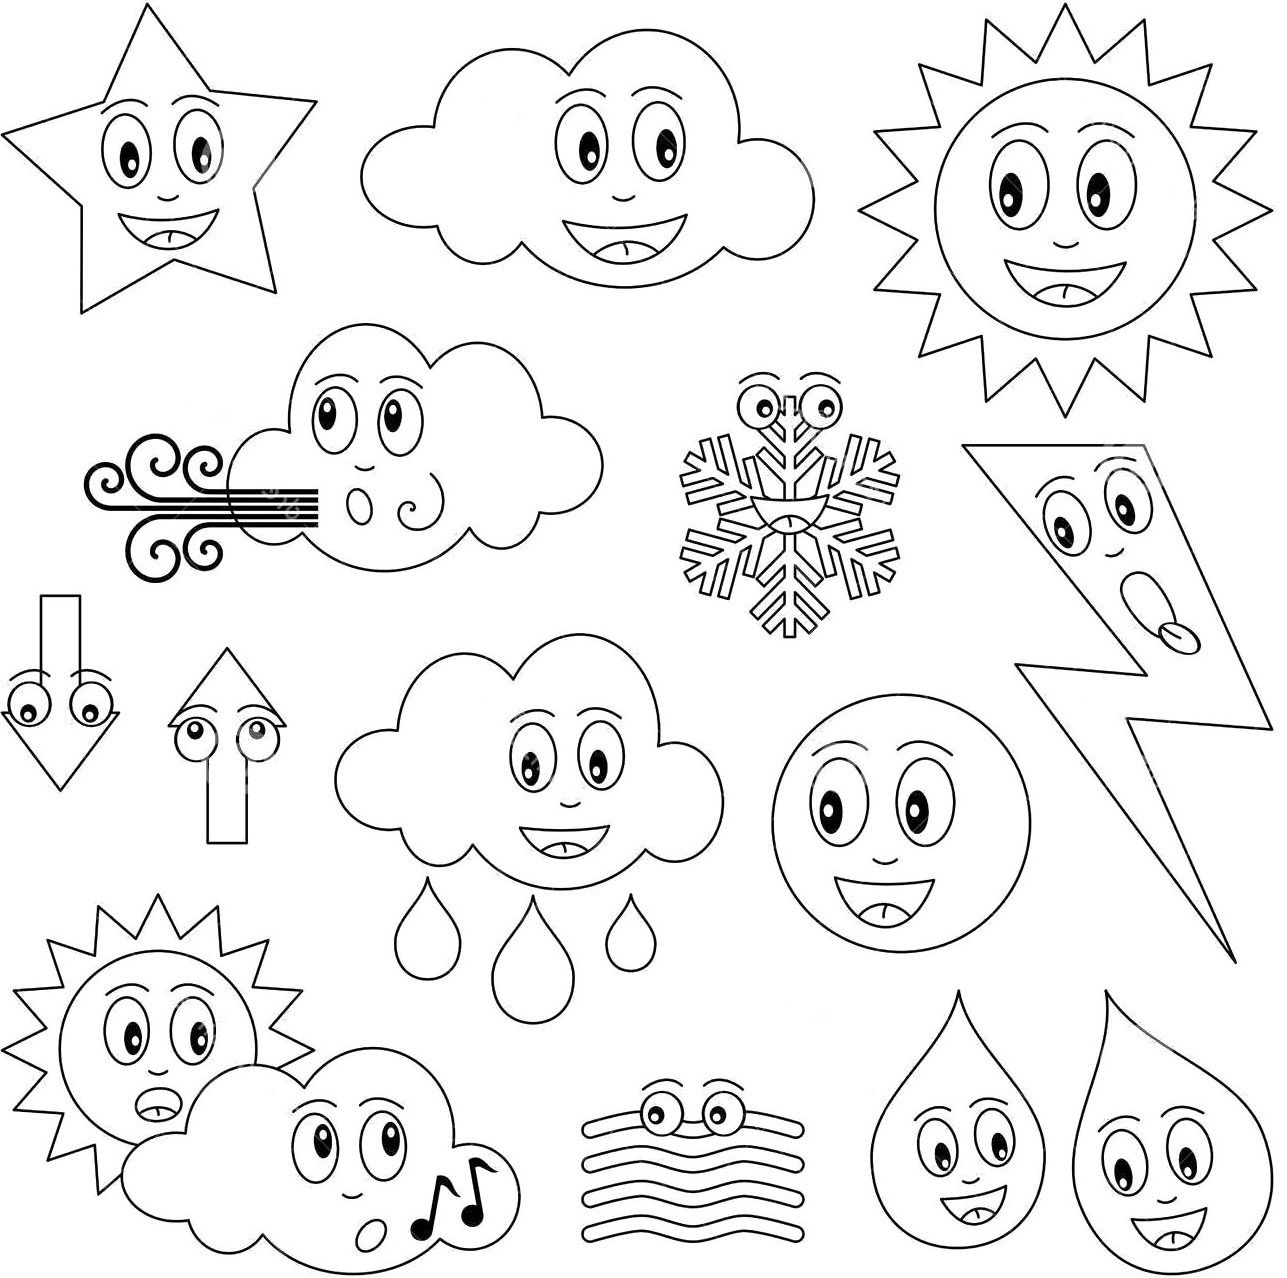 1287x1278 The Dismal State Of Weather Coloring Page For Kids